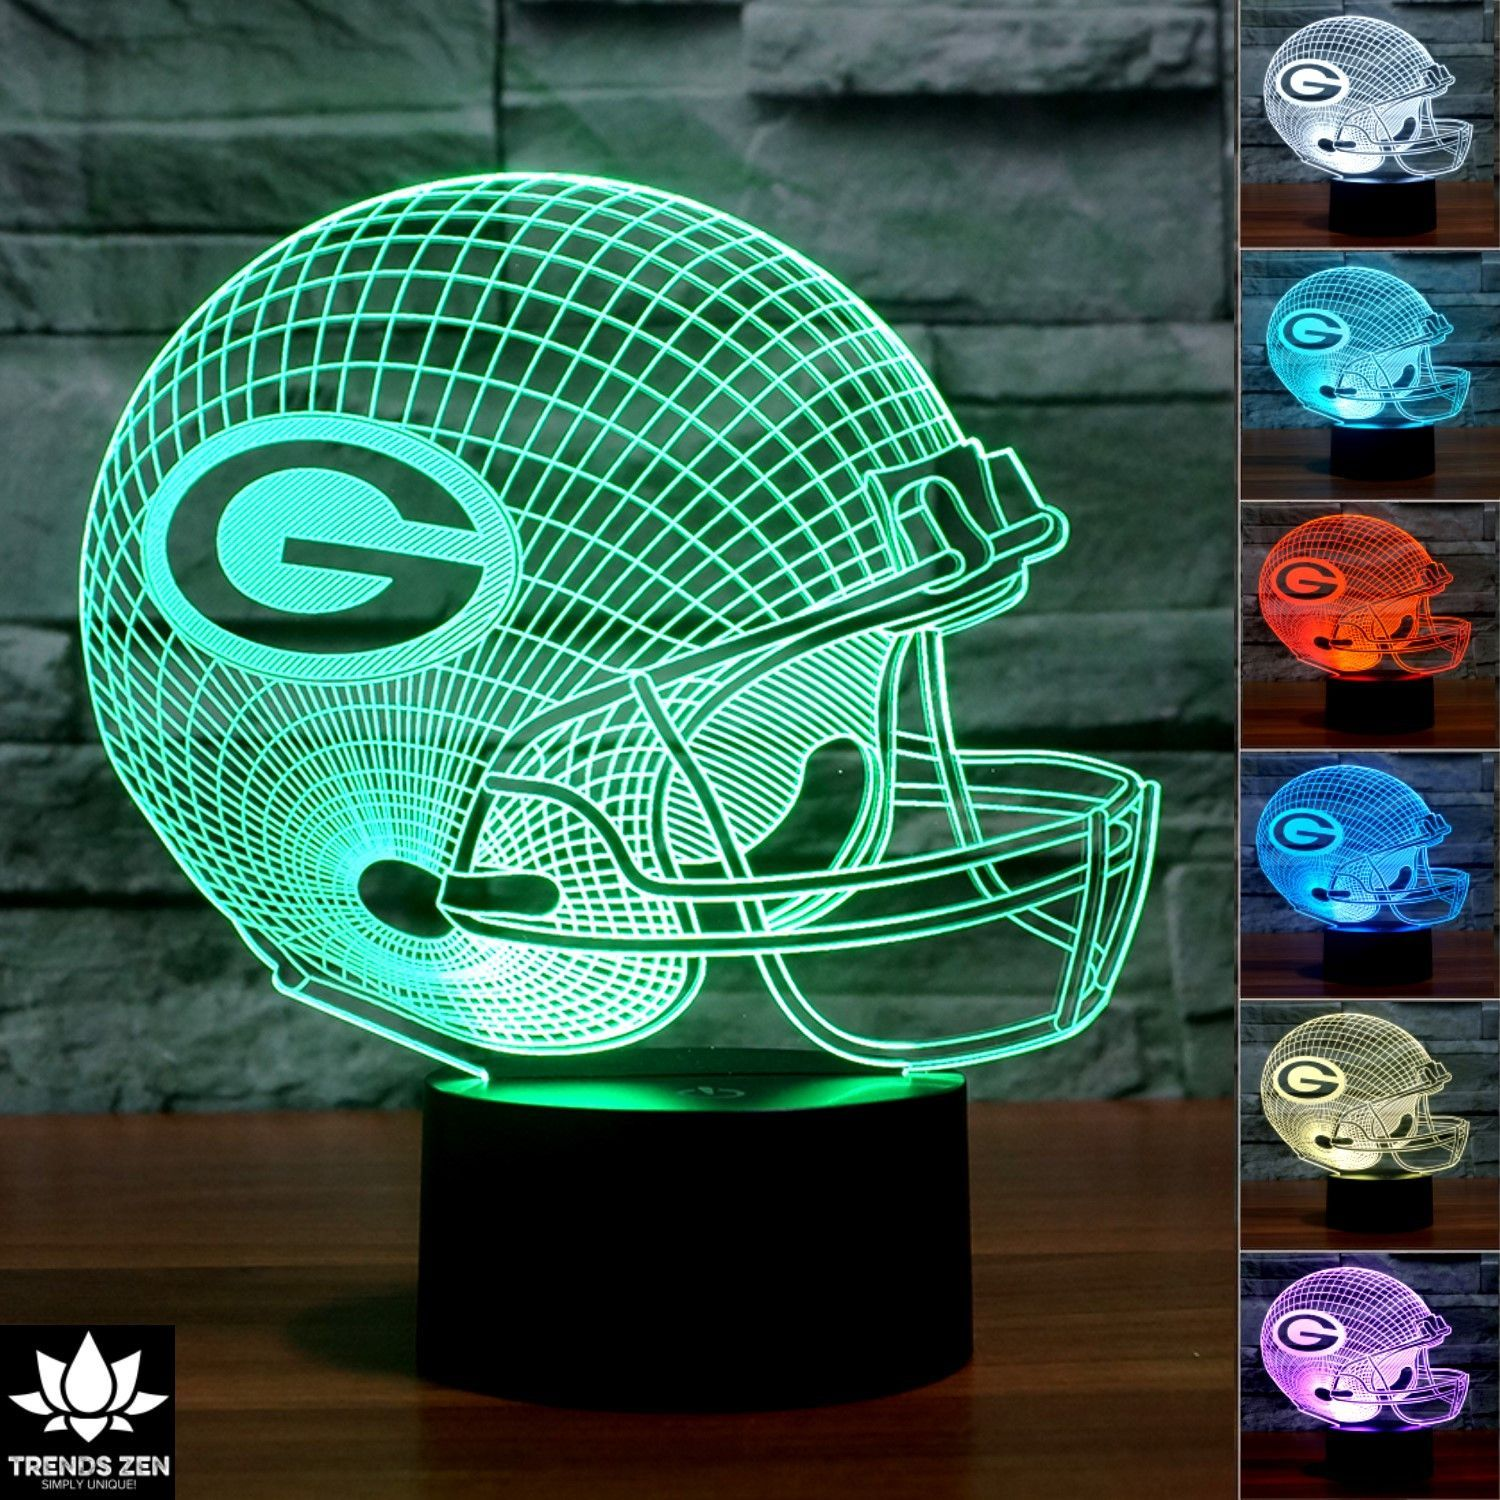 Nfl Green Bay Packers 3d Led Lamp 3d Led Light Led Light Lamp Lamp Light